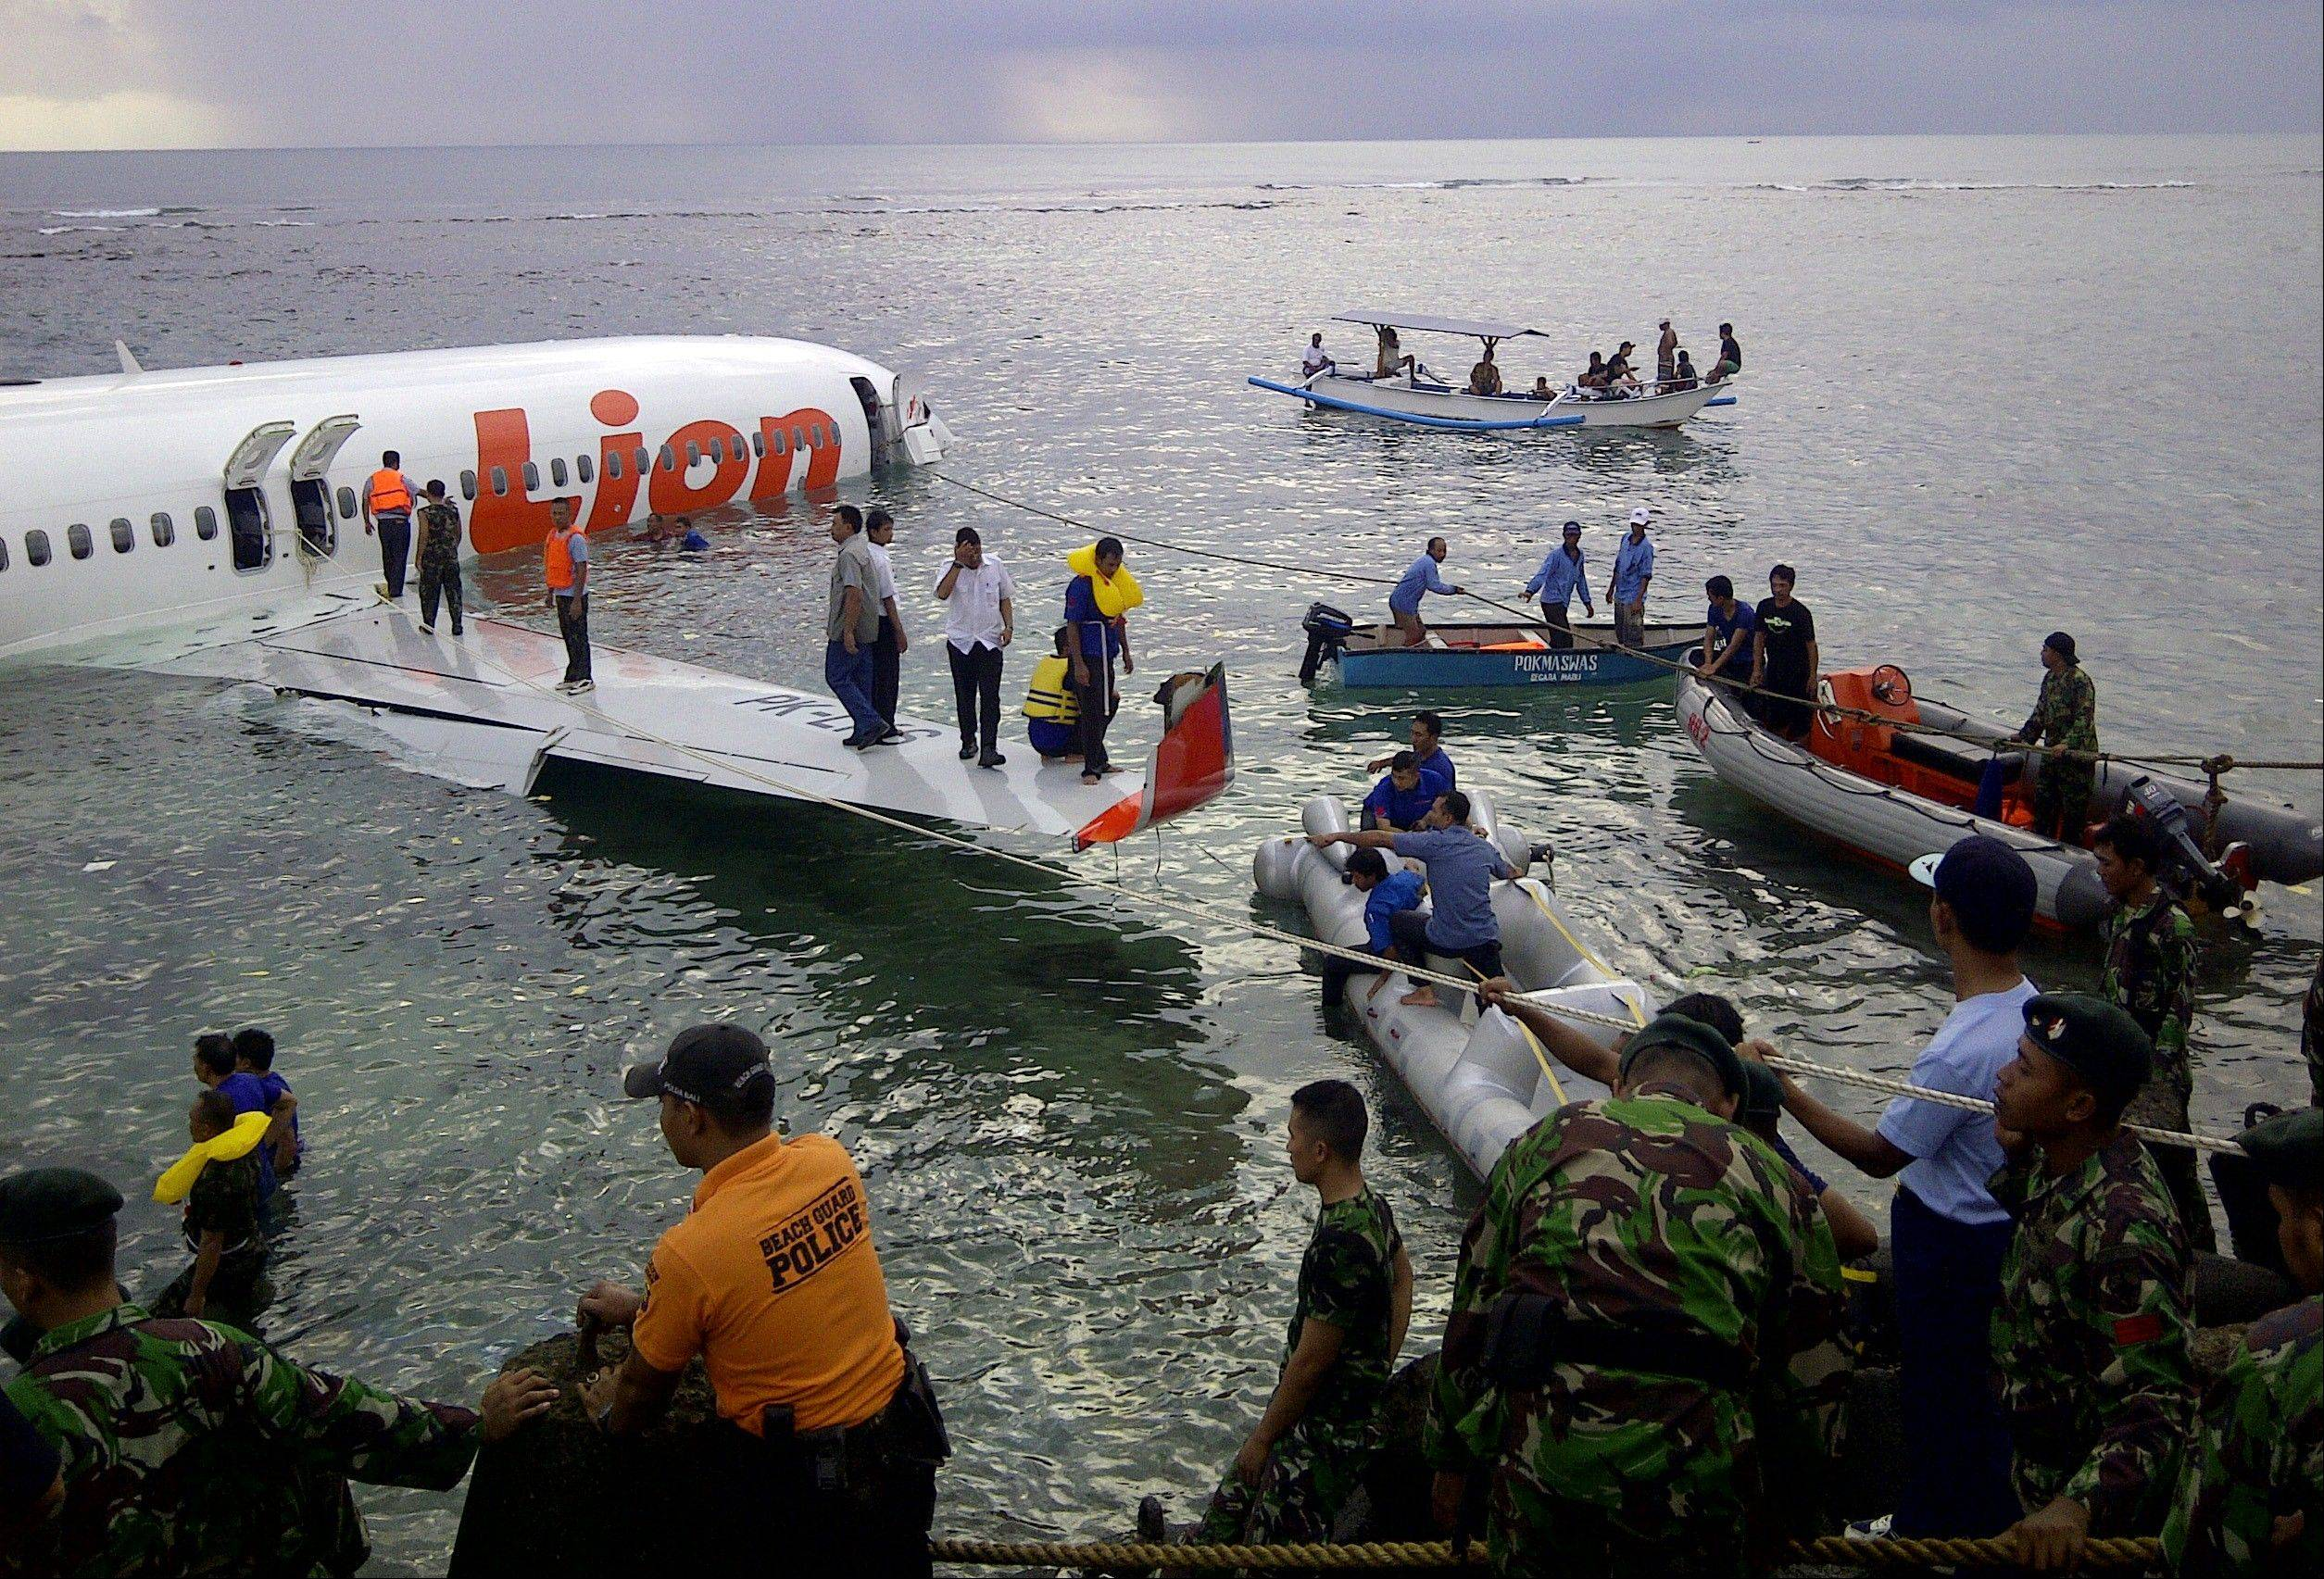 Rescuers assist evacuating passengers at the crash site of a Lion Air plane in Bali, Indonesia, on Saturday. The plane carrying more than 100 passengers and crew overshot a runway on the Indonesian resort island of Bali on Saturday and crashed into the sea, injuring nearly two dozen people, officials said.